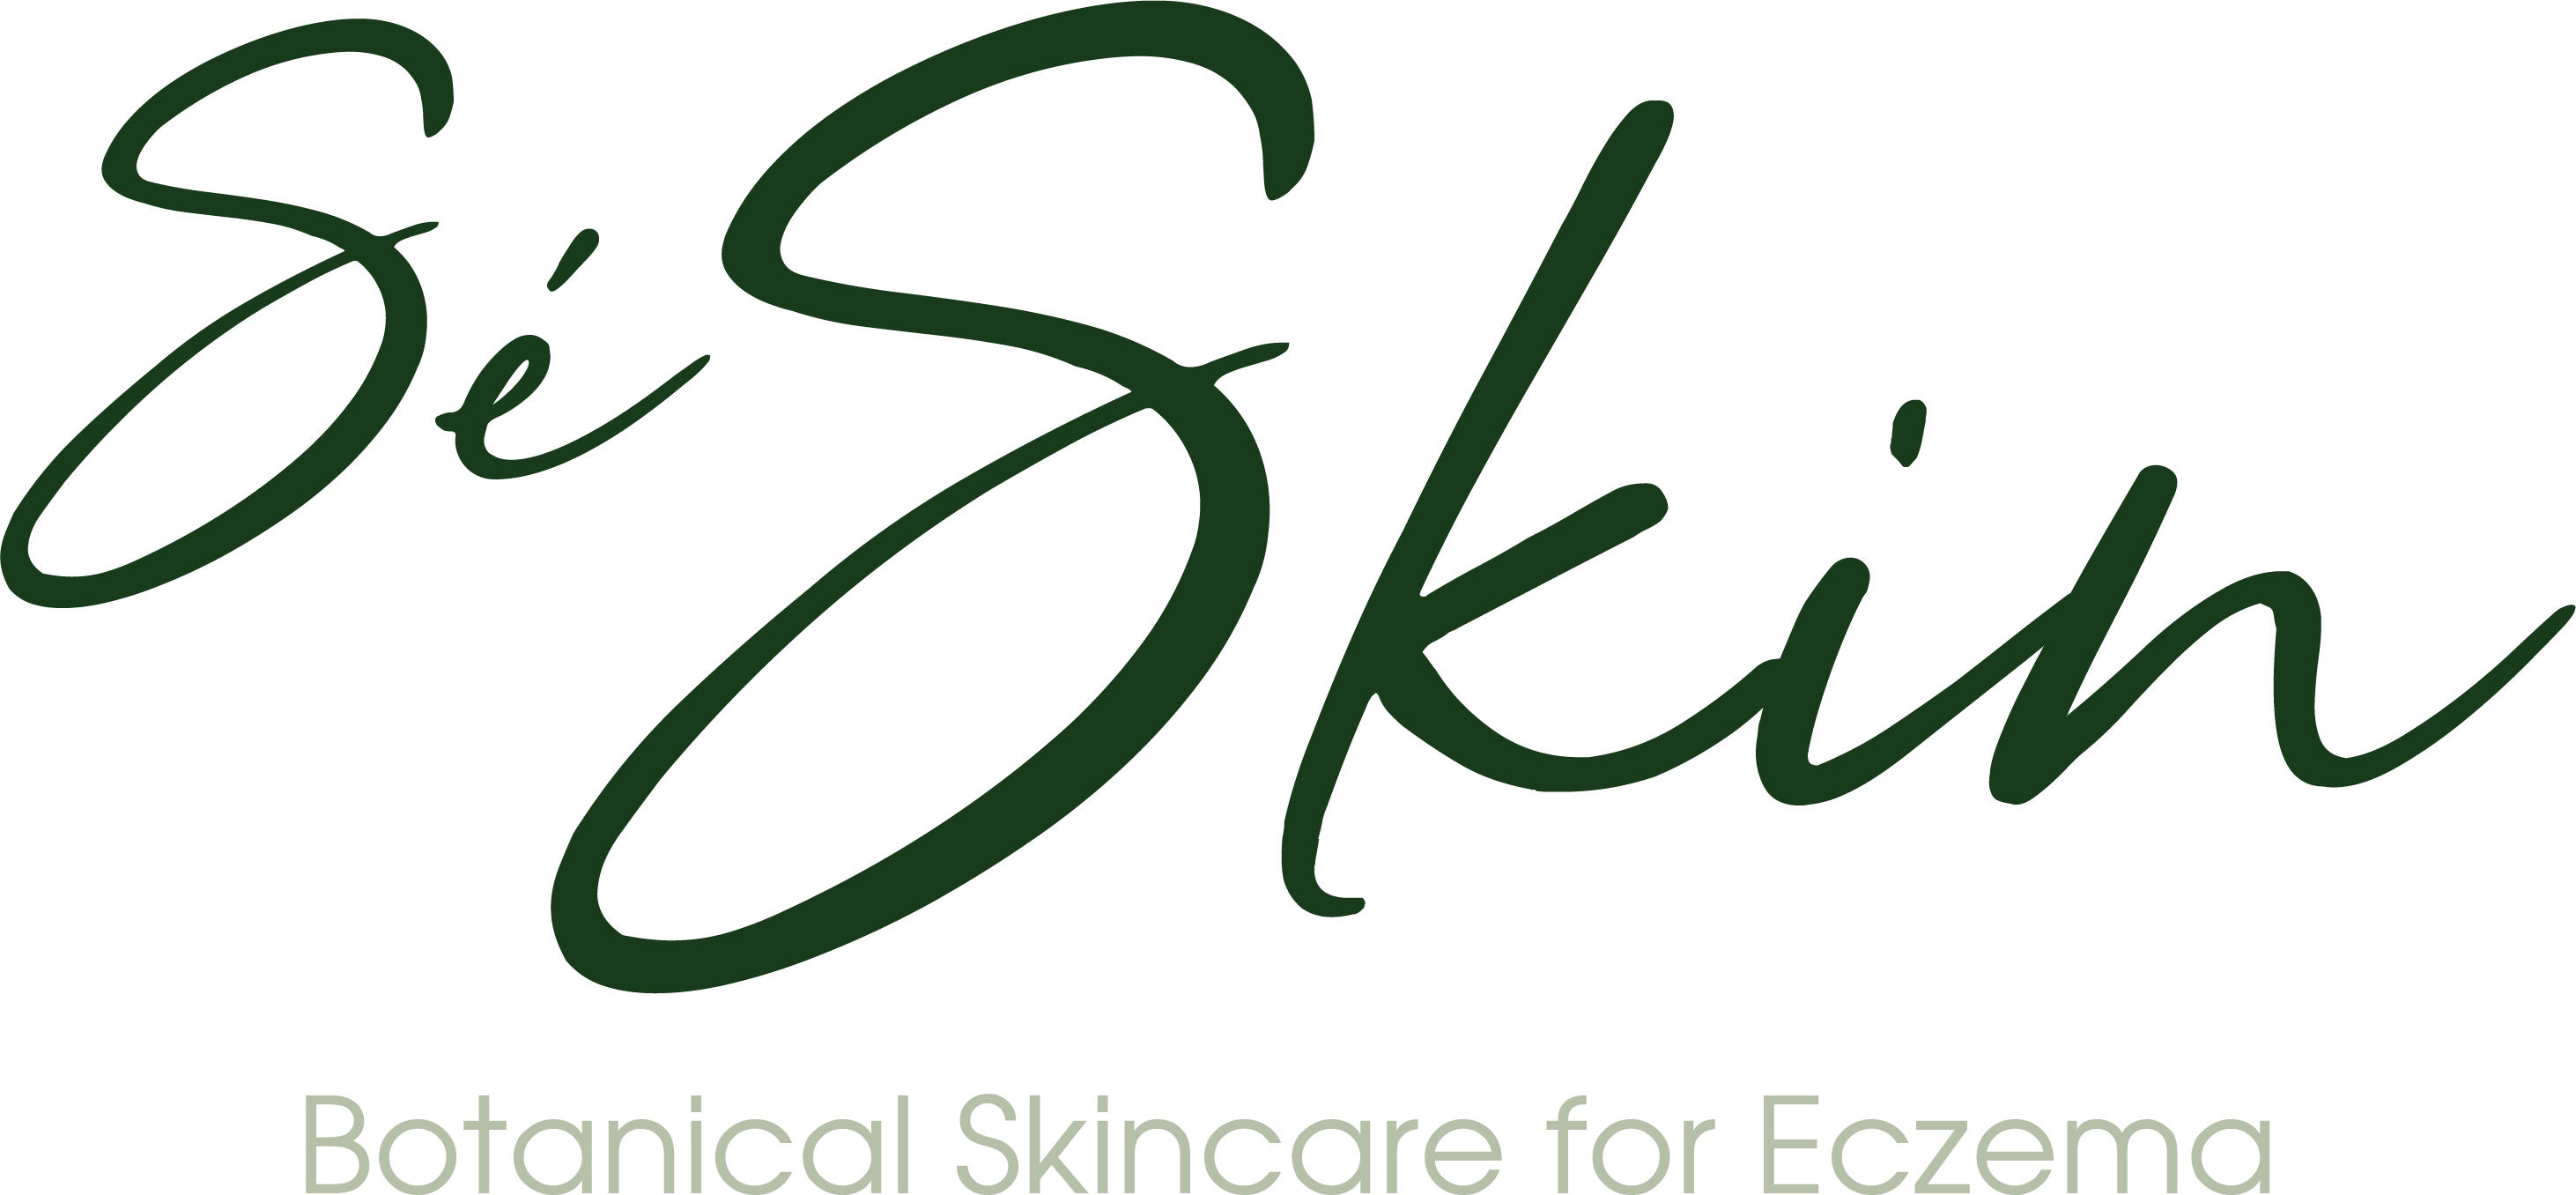 se-skin-final-logo-color-web.jpg